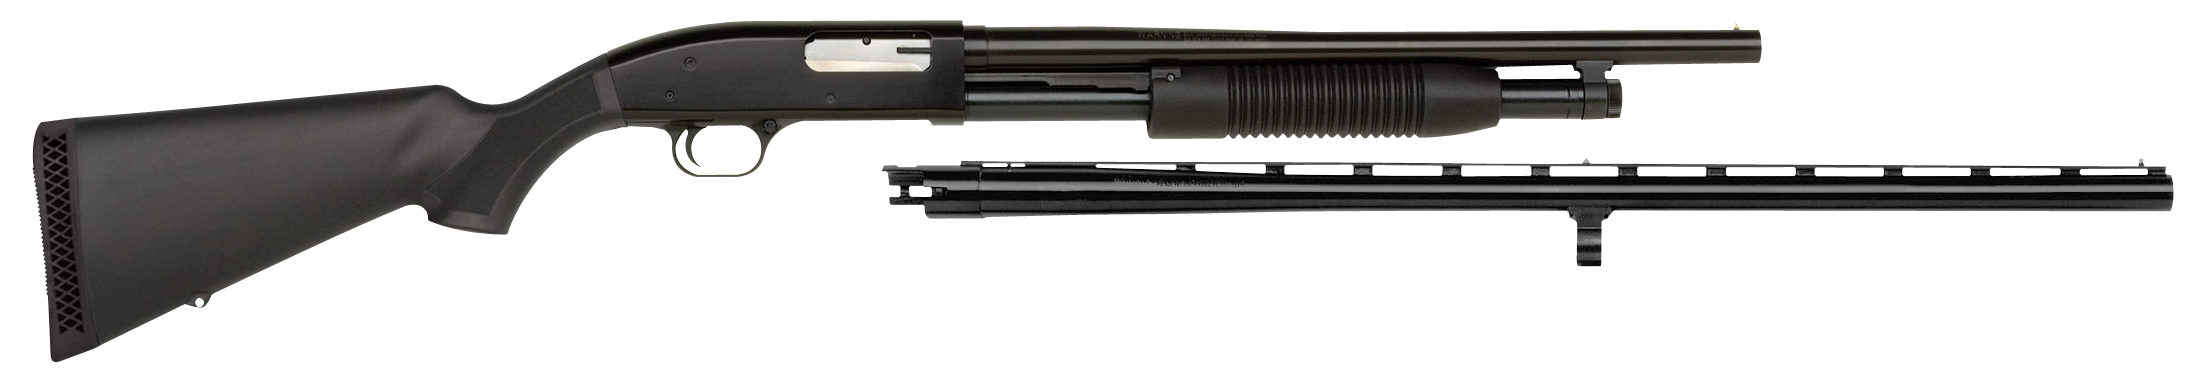 Maverick Arms 31014 88 Field and Security Combo Pump 12 Gauge Black Synthetic Stock Blued